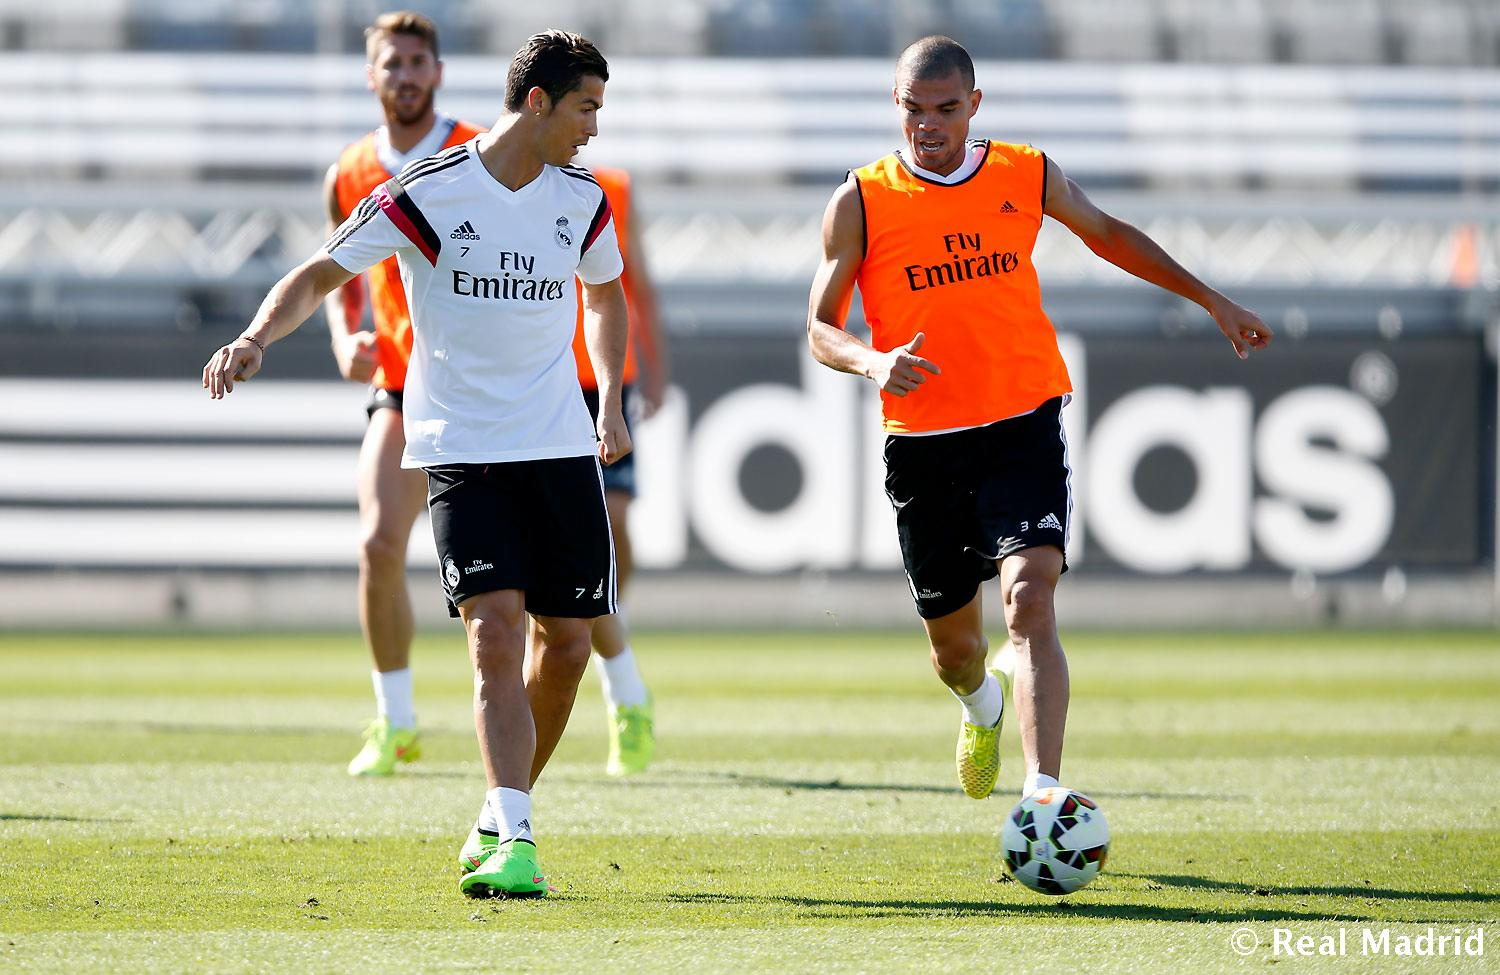 Real Madrid - Entrenamiento del Real Madrid - 10-09-2014